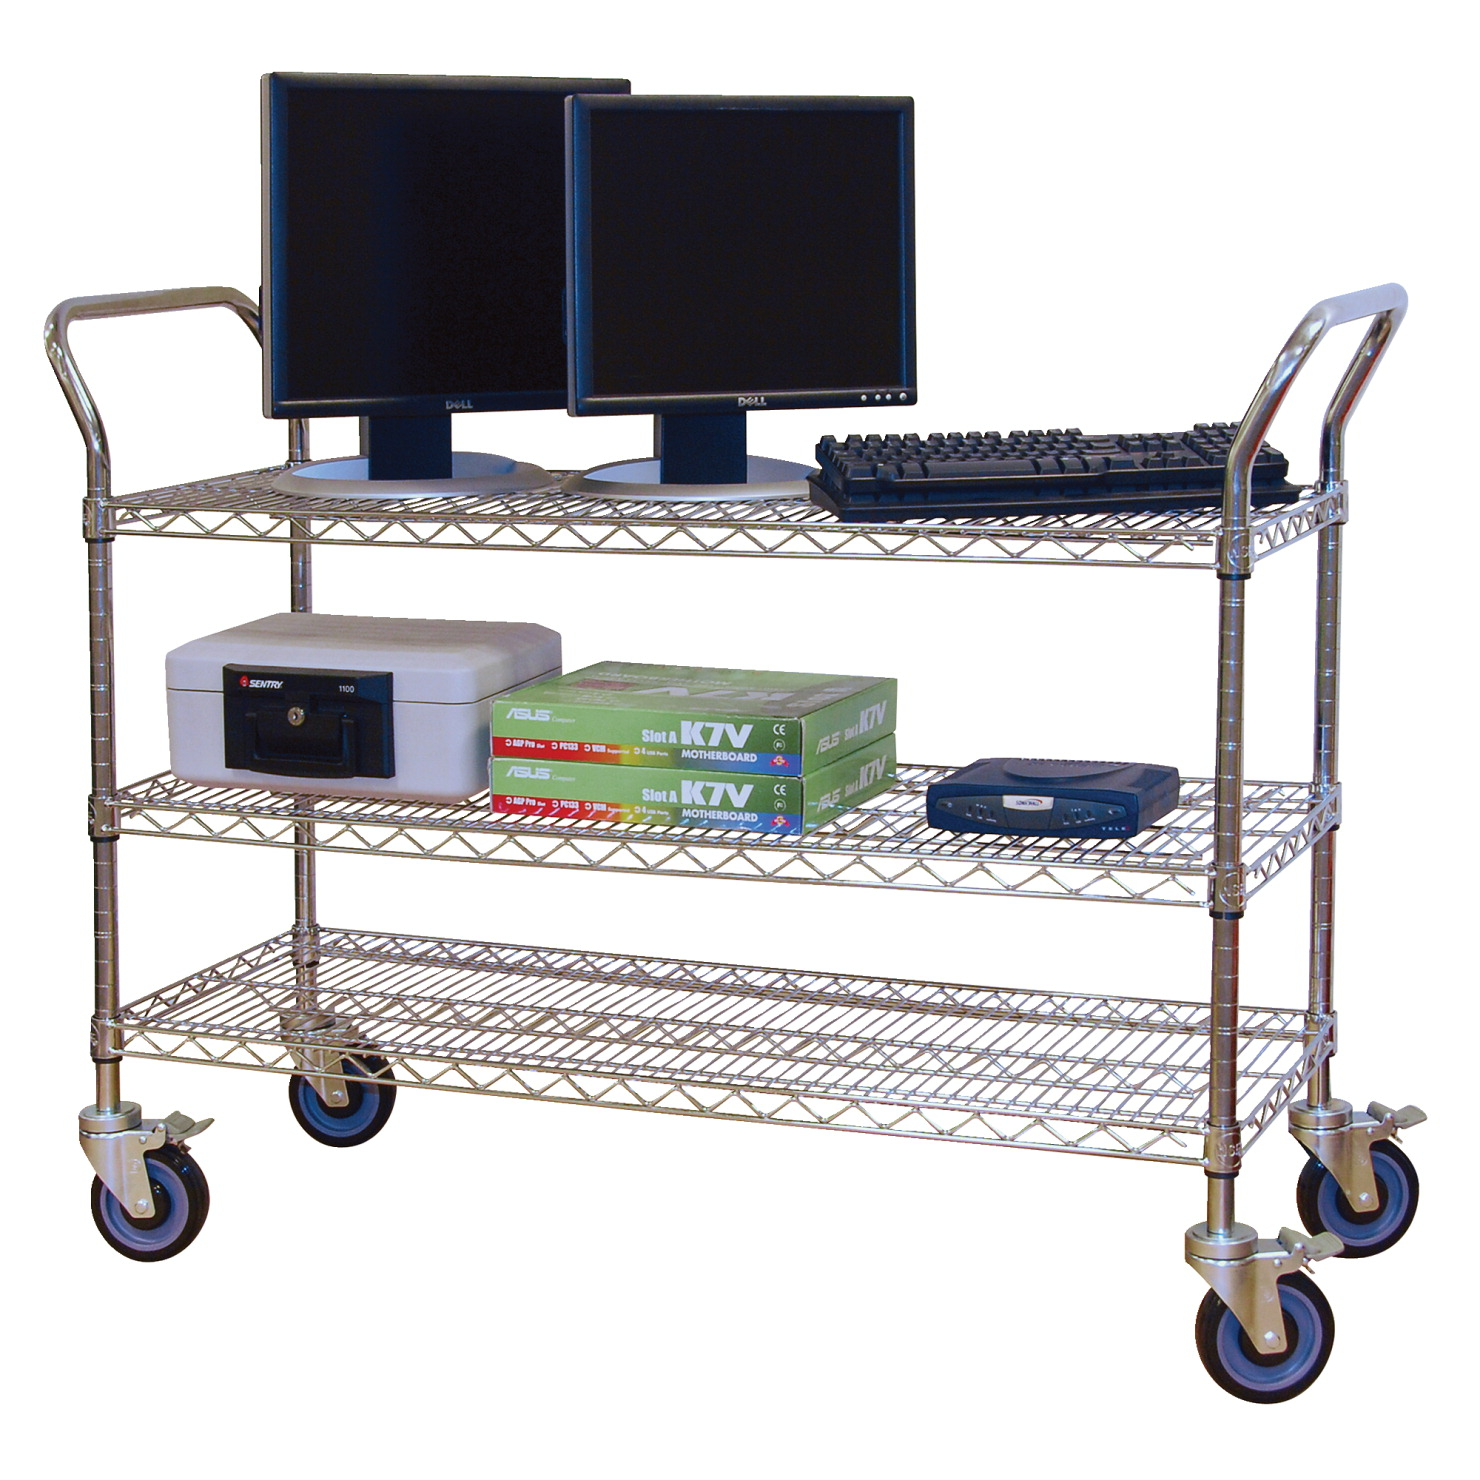 Jaken Wire Service Cart, 3 Shelves, 48 x 18 x 39 Inches, Chrome